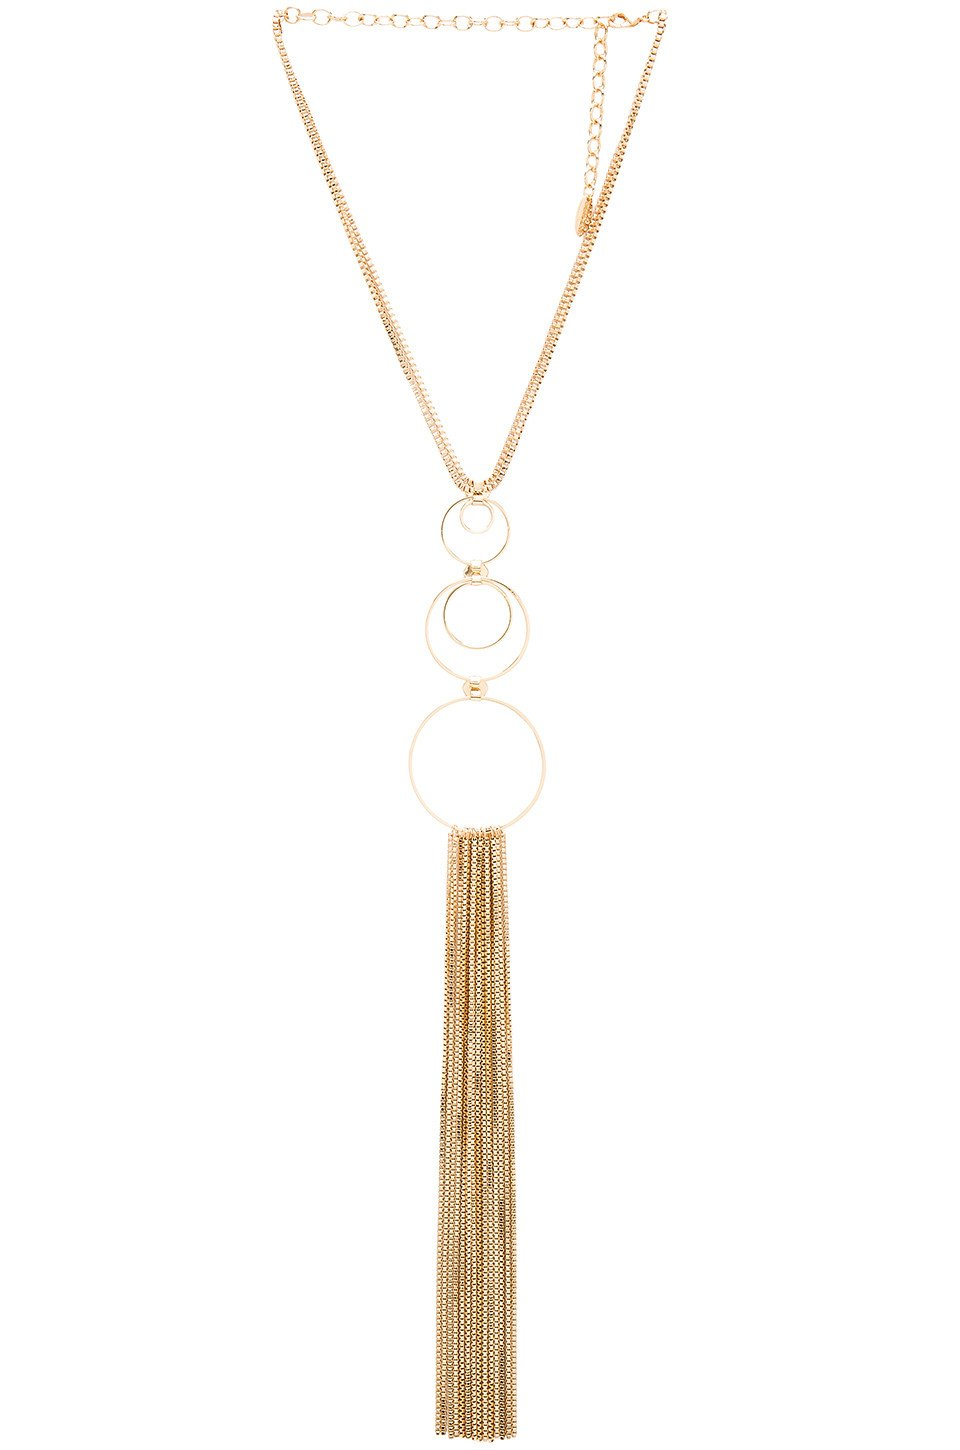 Circle Fringe Retro Necklace - Kustom Label